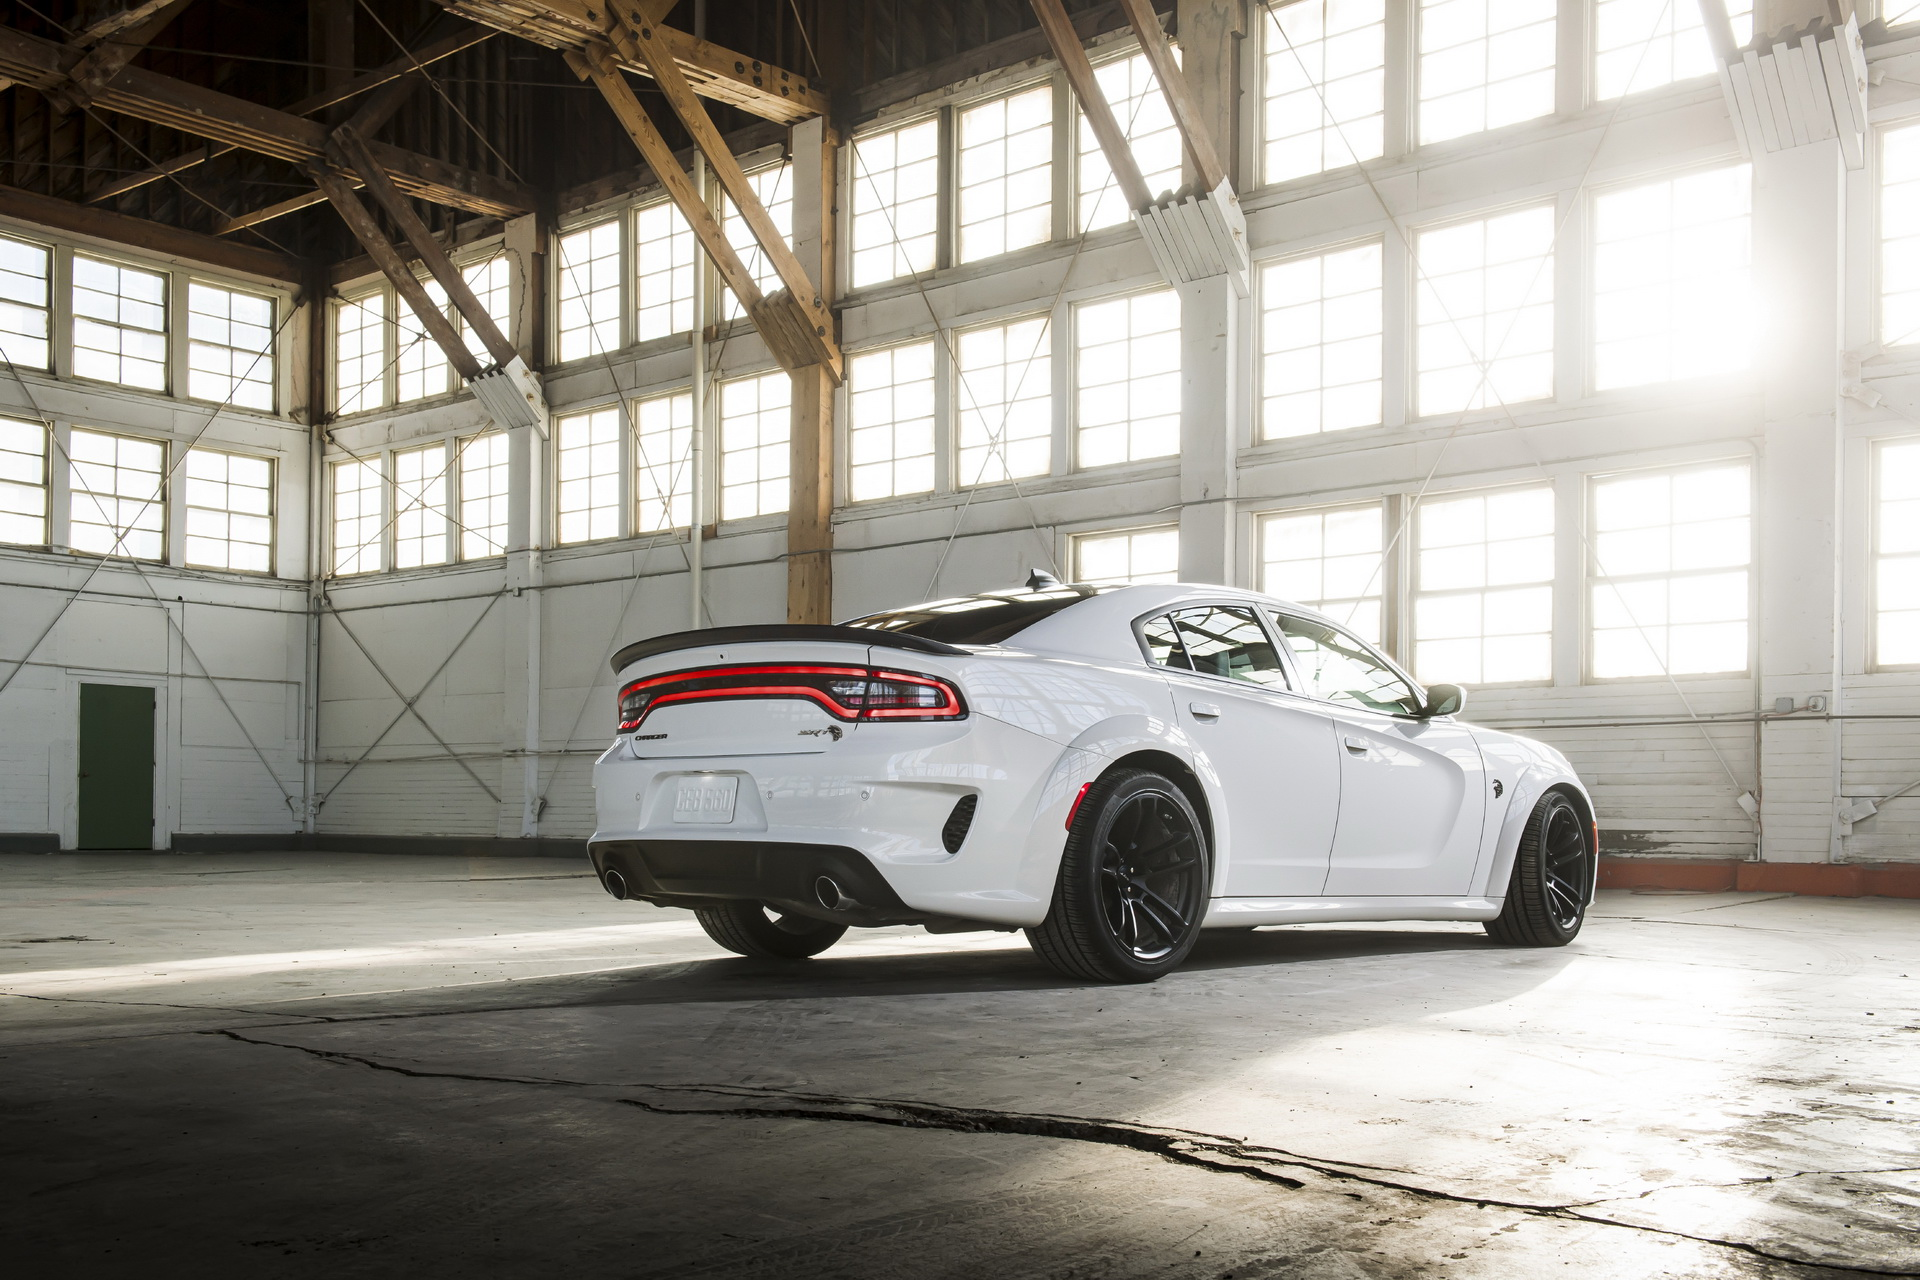 2021 Dodge Charger Srt Hellcat Redeye Your New 203 Mph 797 Hp Sedan Has Arrived Carscoops